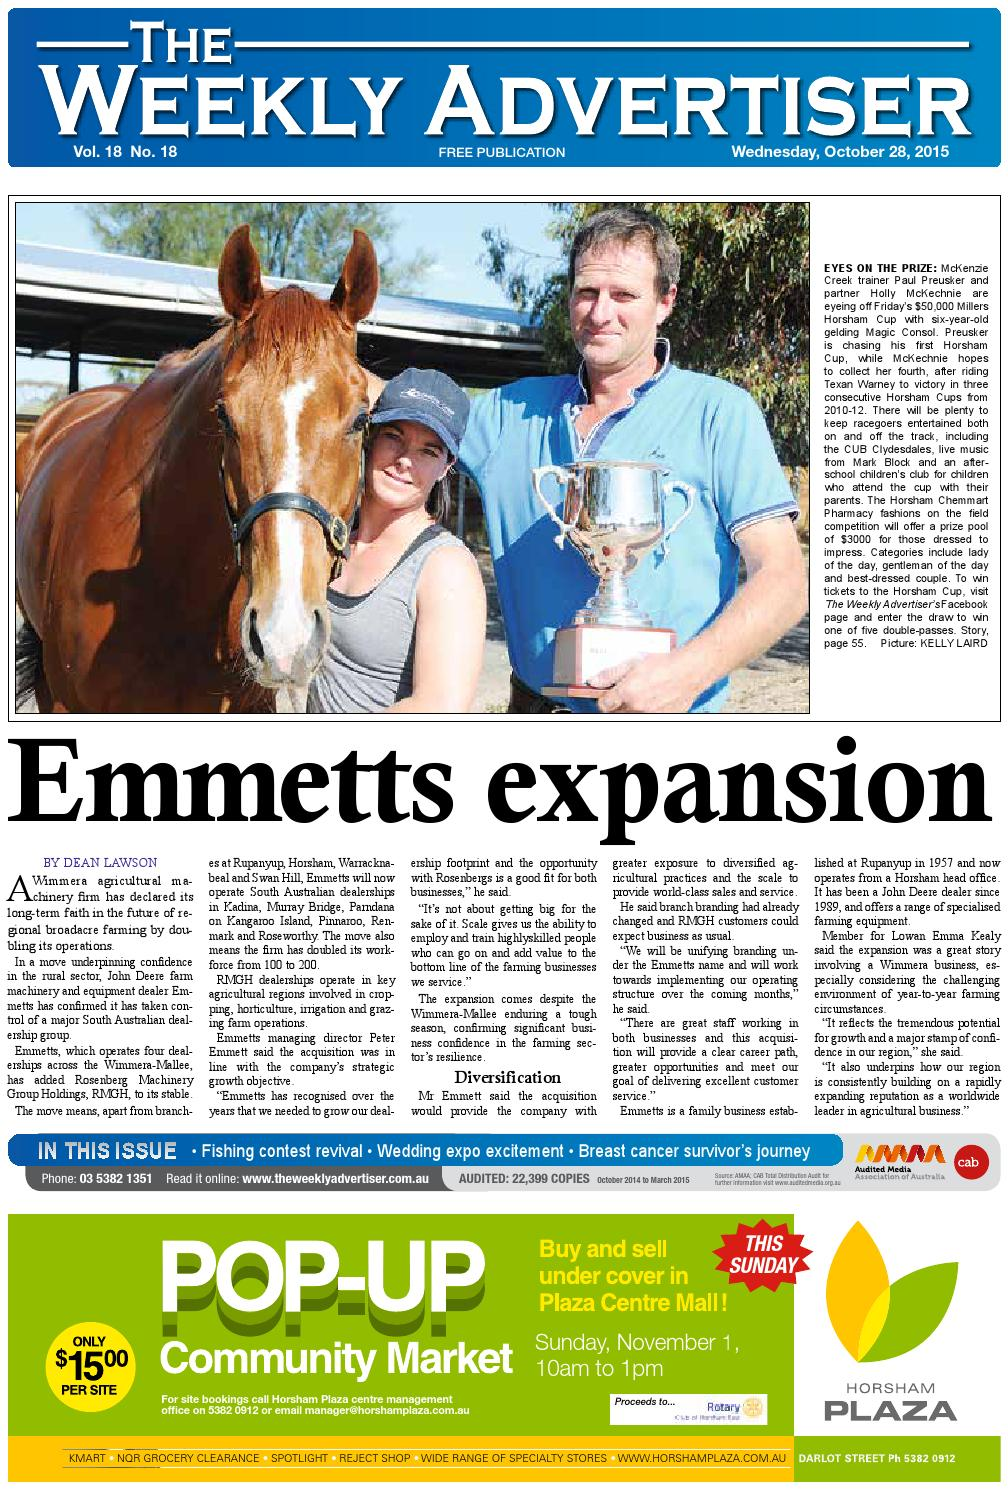 The Weekly Advertiser Wednesday October 28 2015 By Gibson Ripper Wiring Harness Issuu